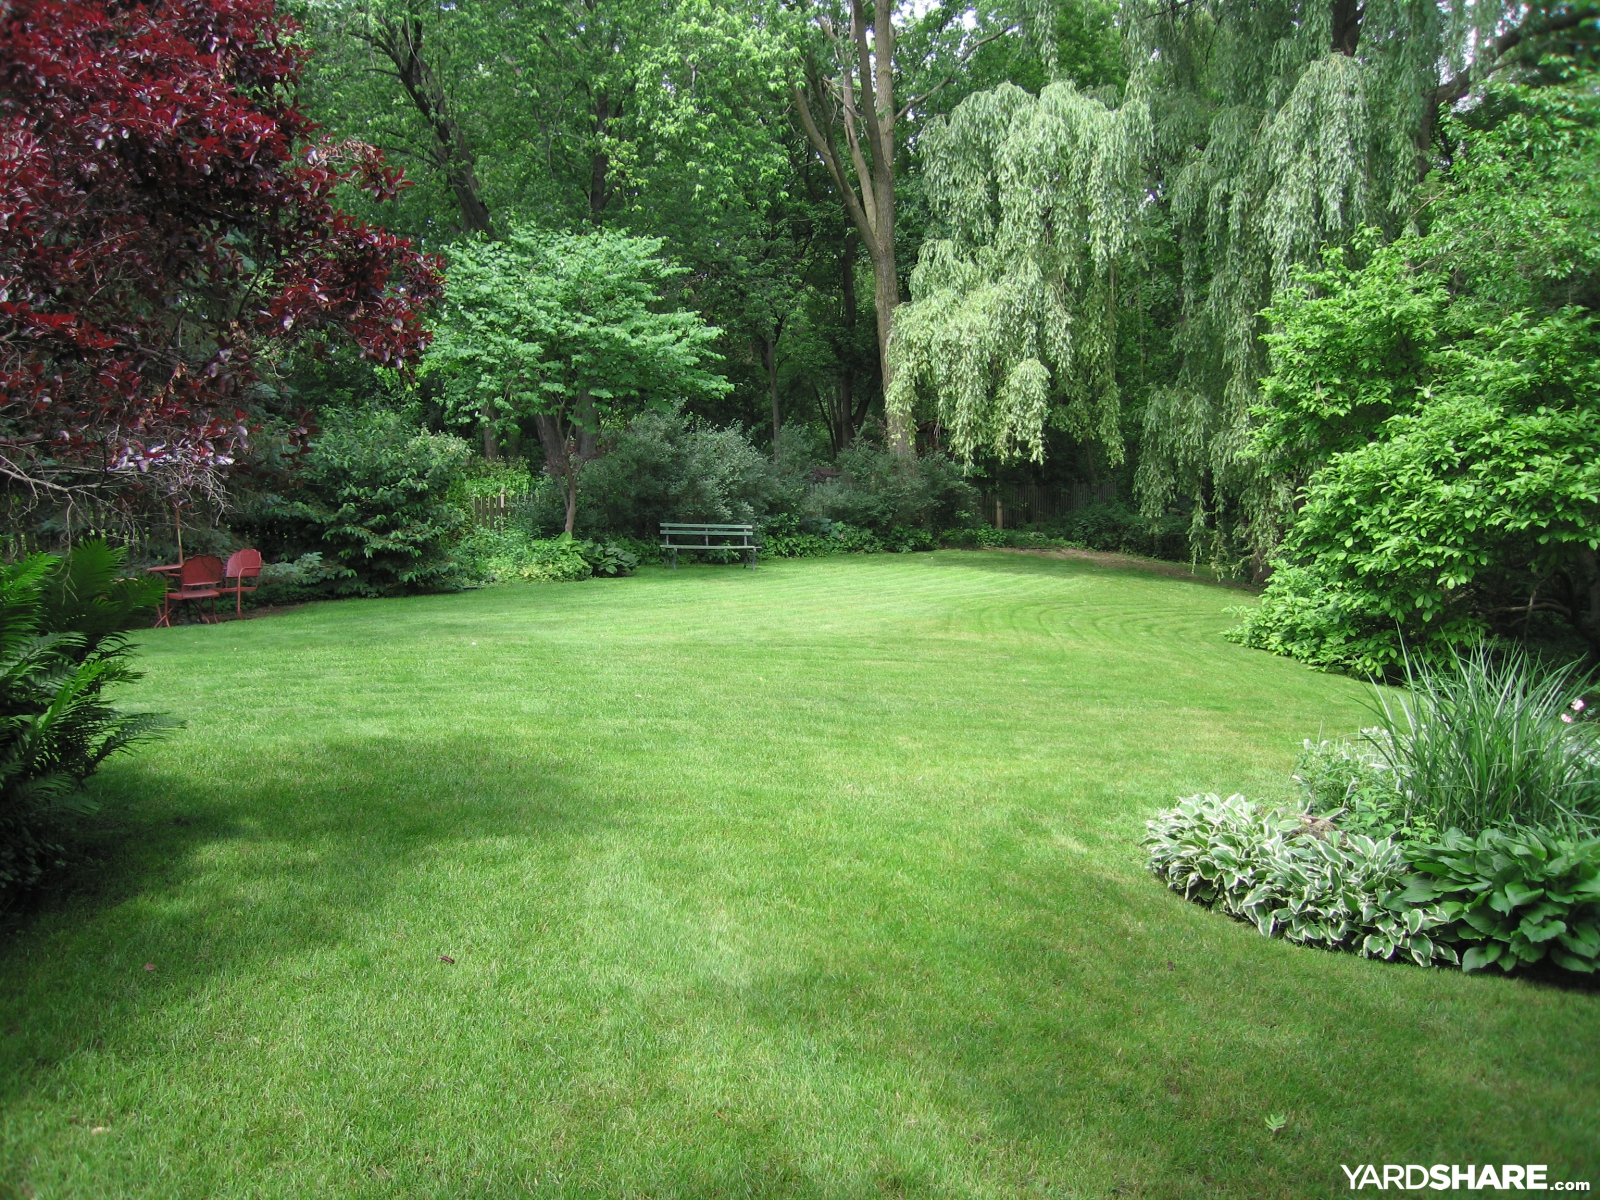 Landscaping ideas backyard at whispering oaks for Yard landscaping ideas